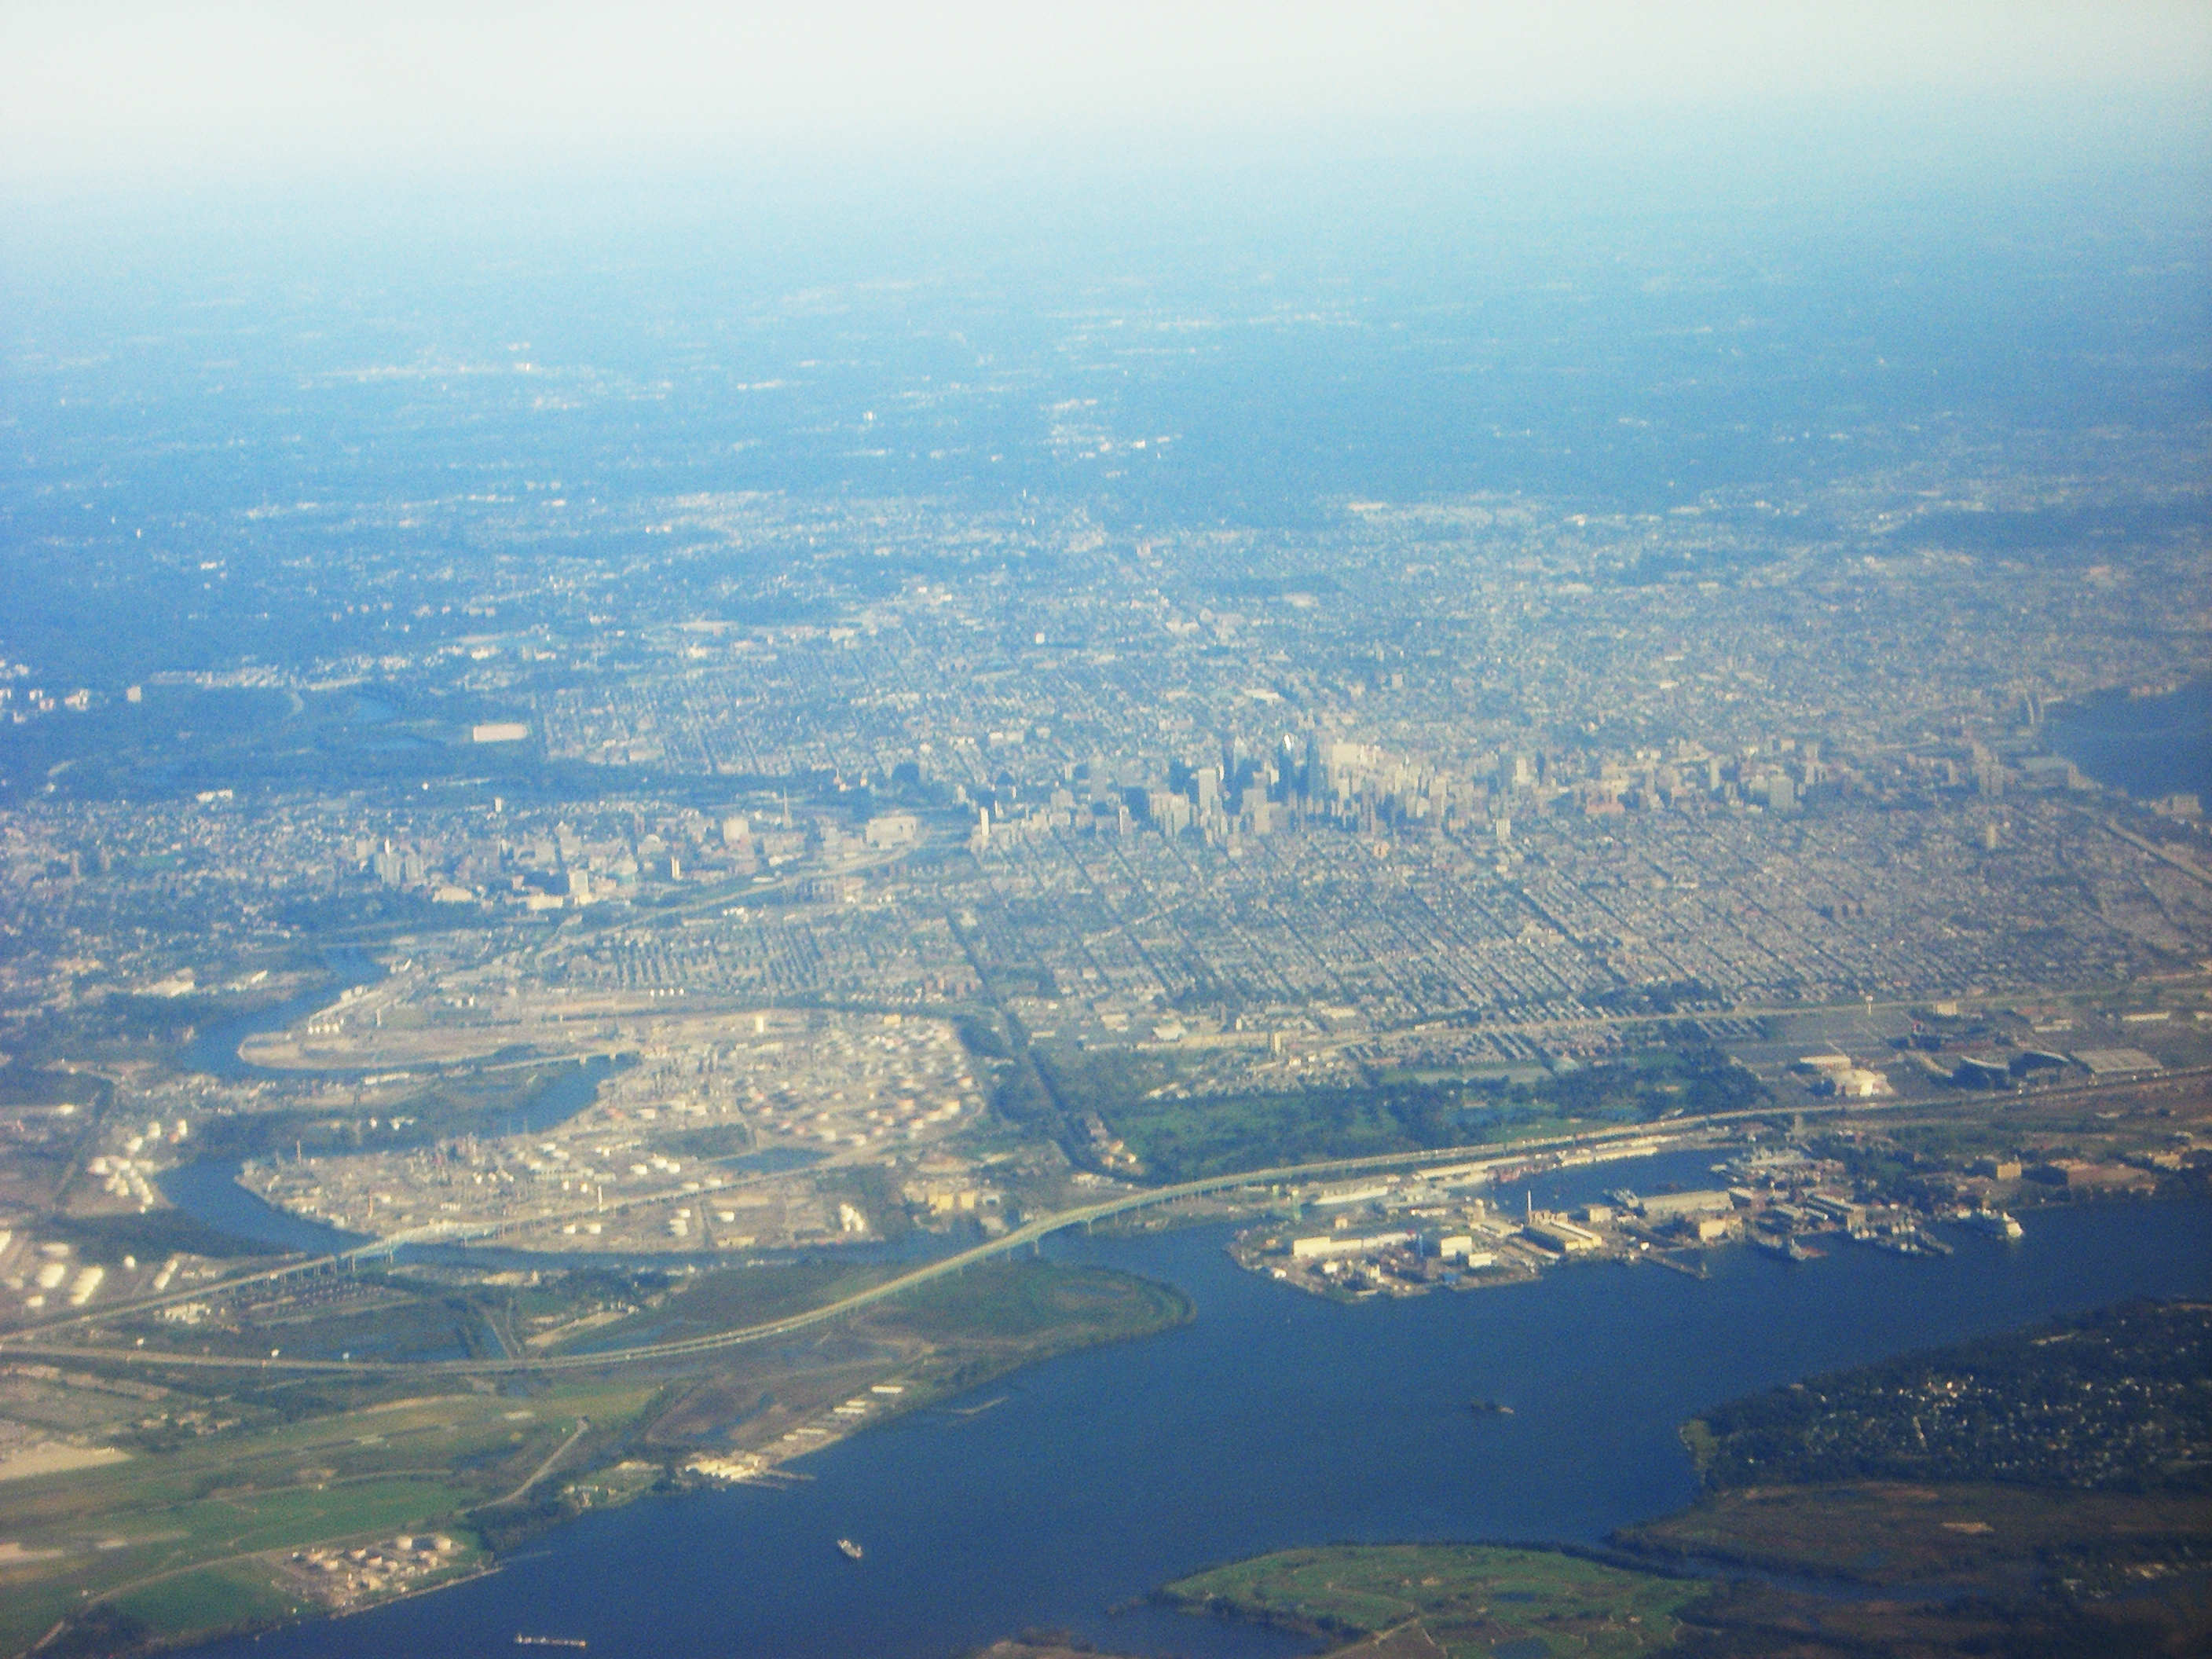 File:Philadelphia aerial view.jpg - Wikimedia Commons